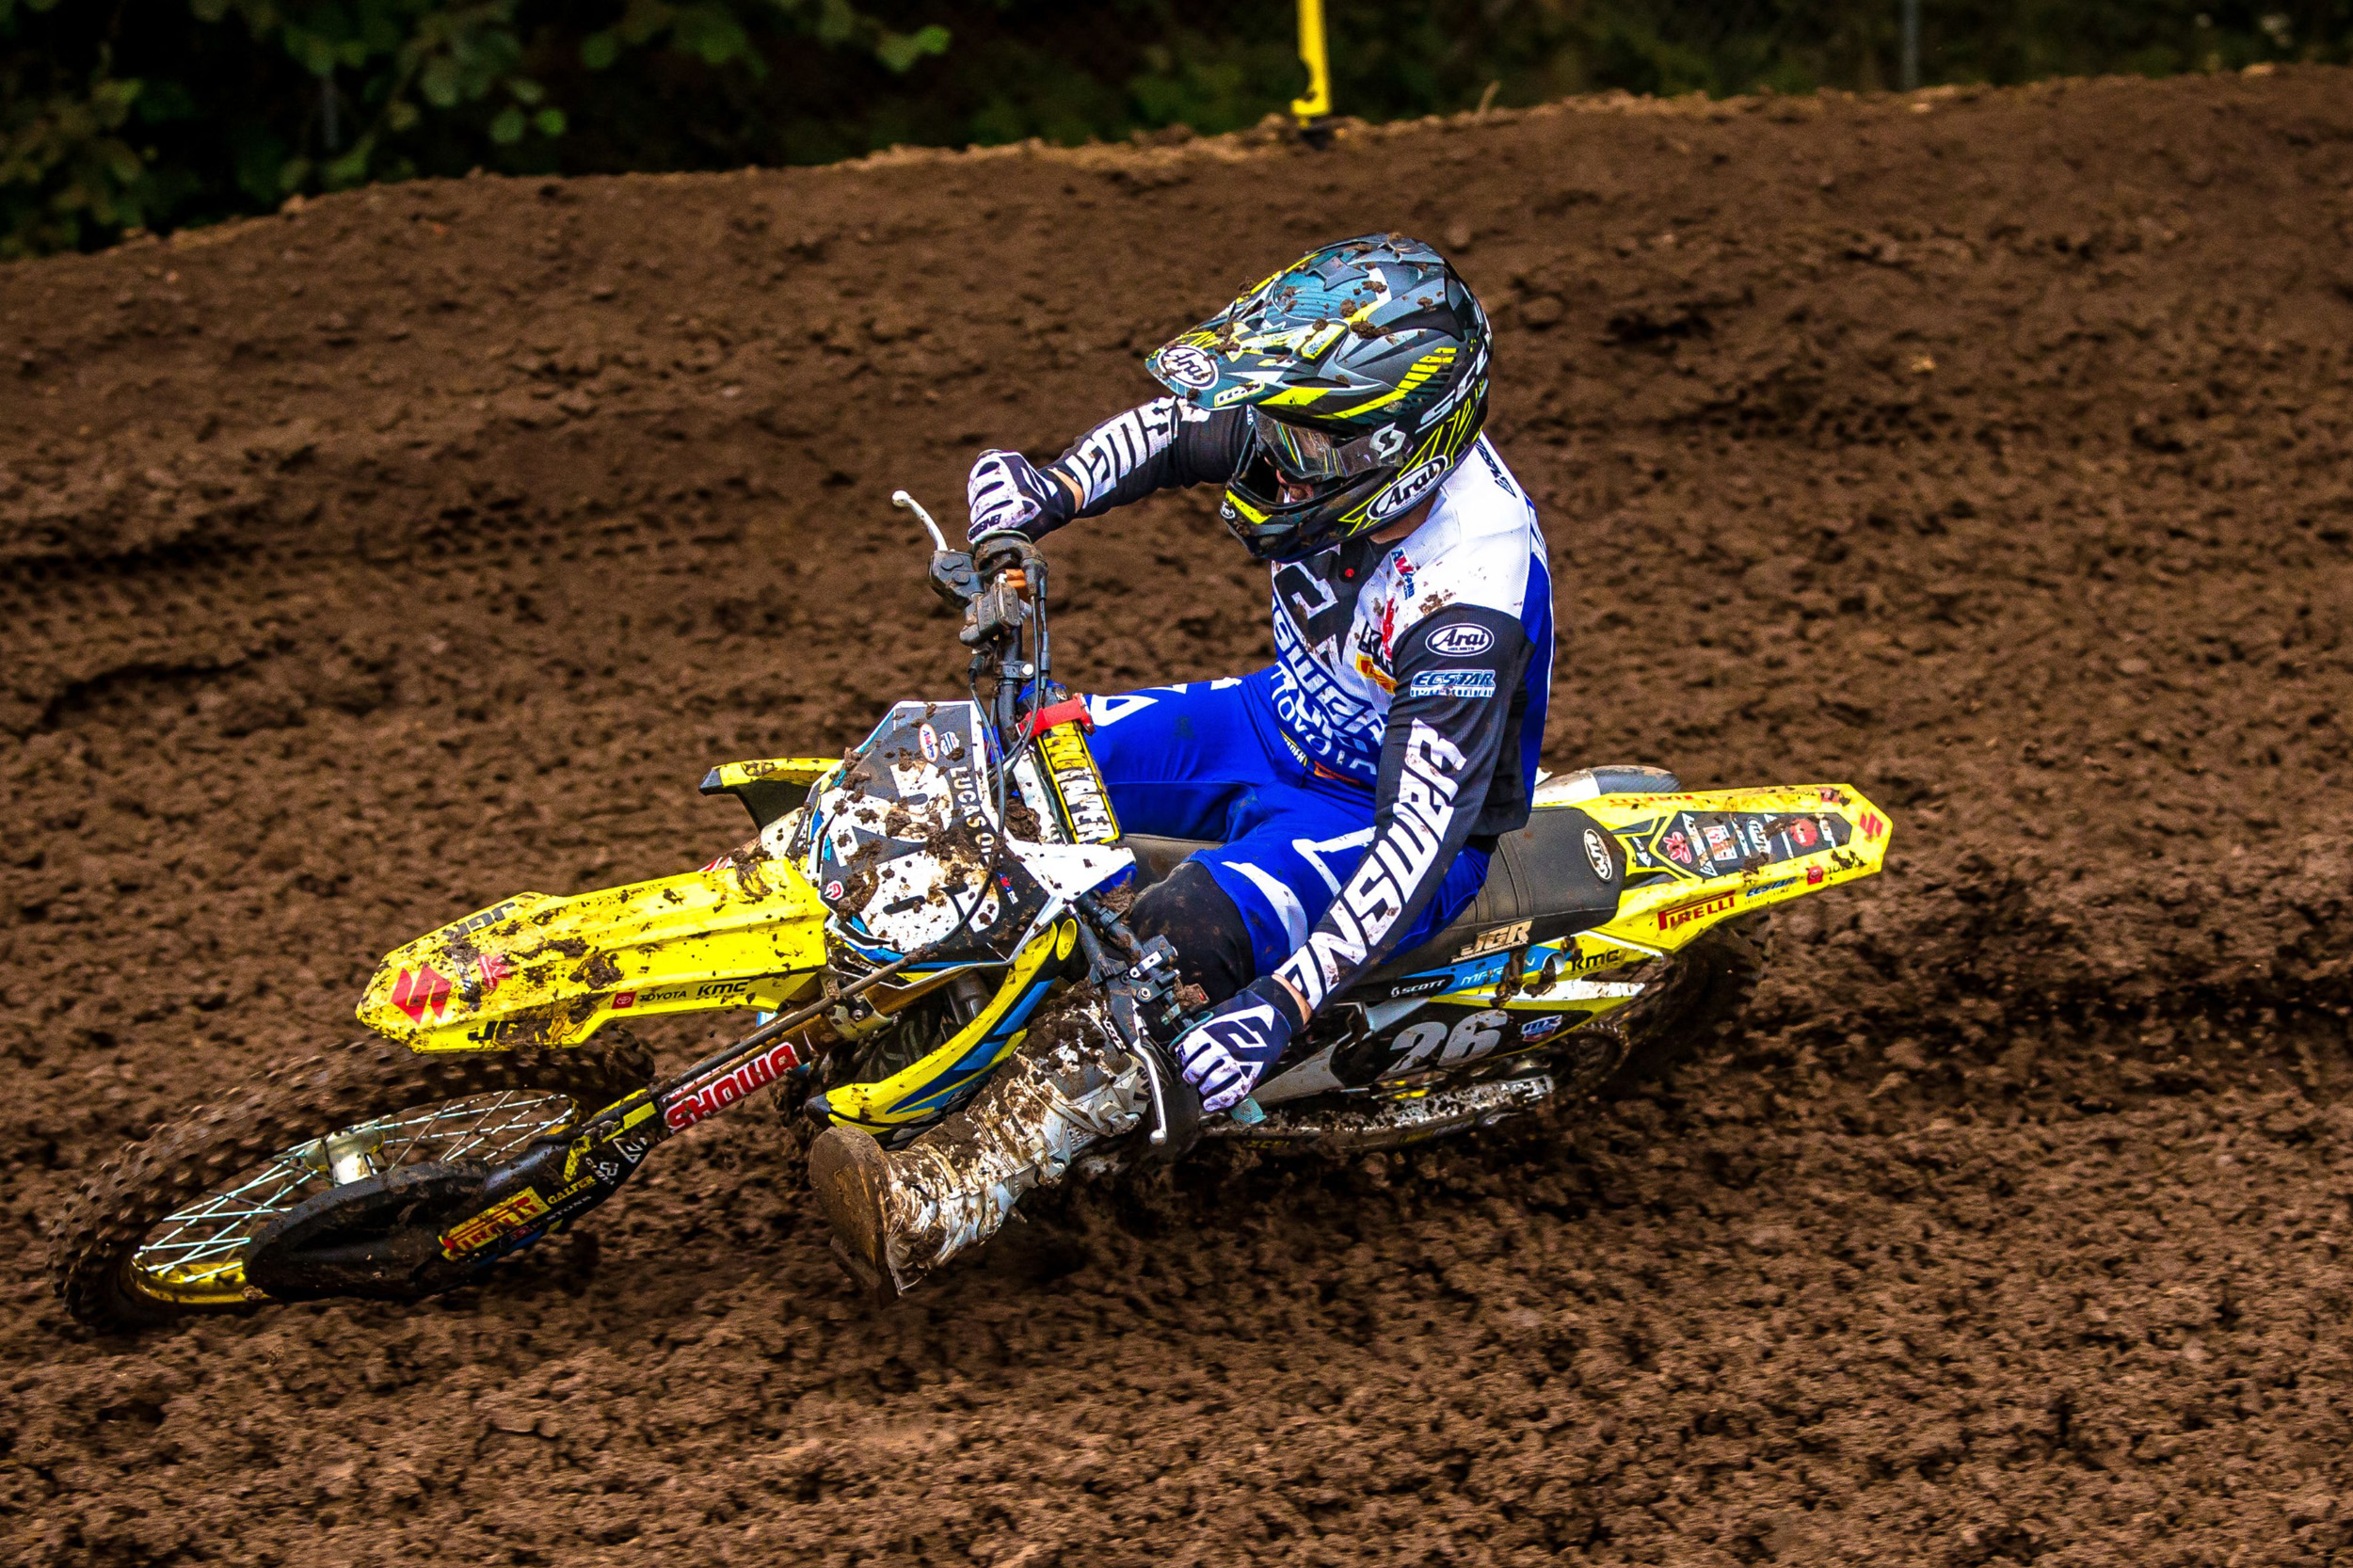 Alex Martin (#26) pushes through the muddy conditions to remain in the top-ten - Washougal National